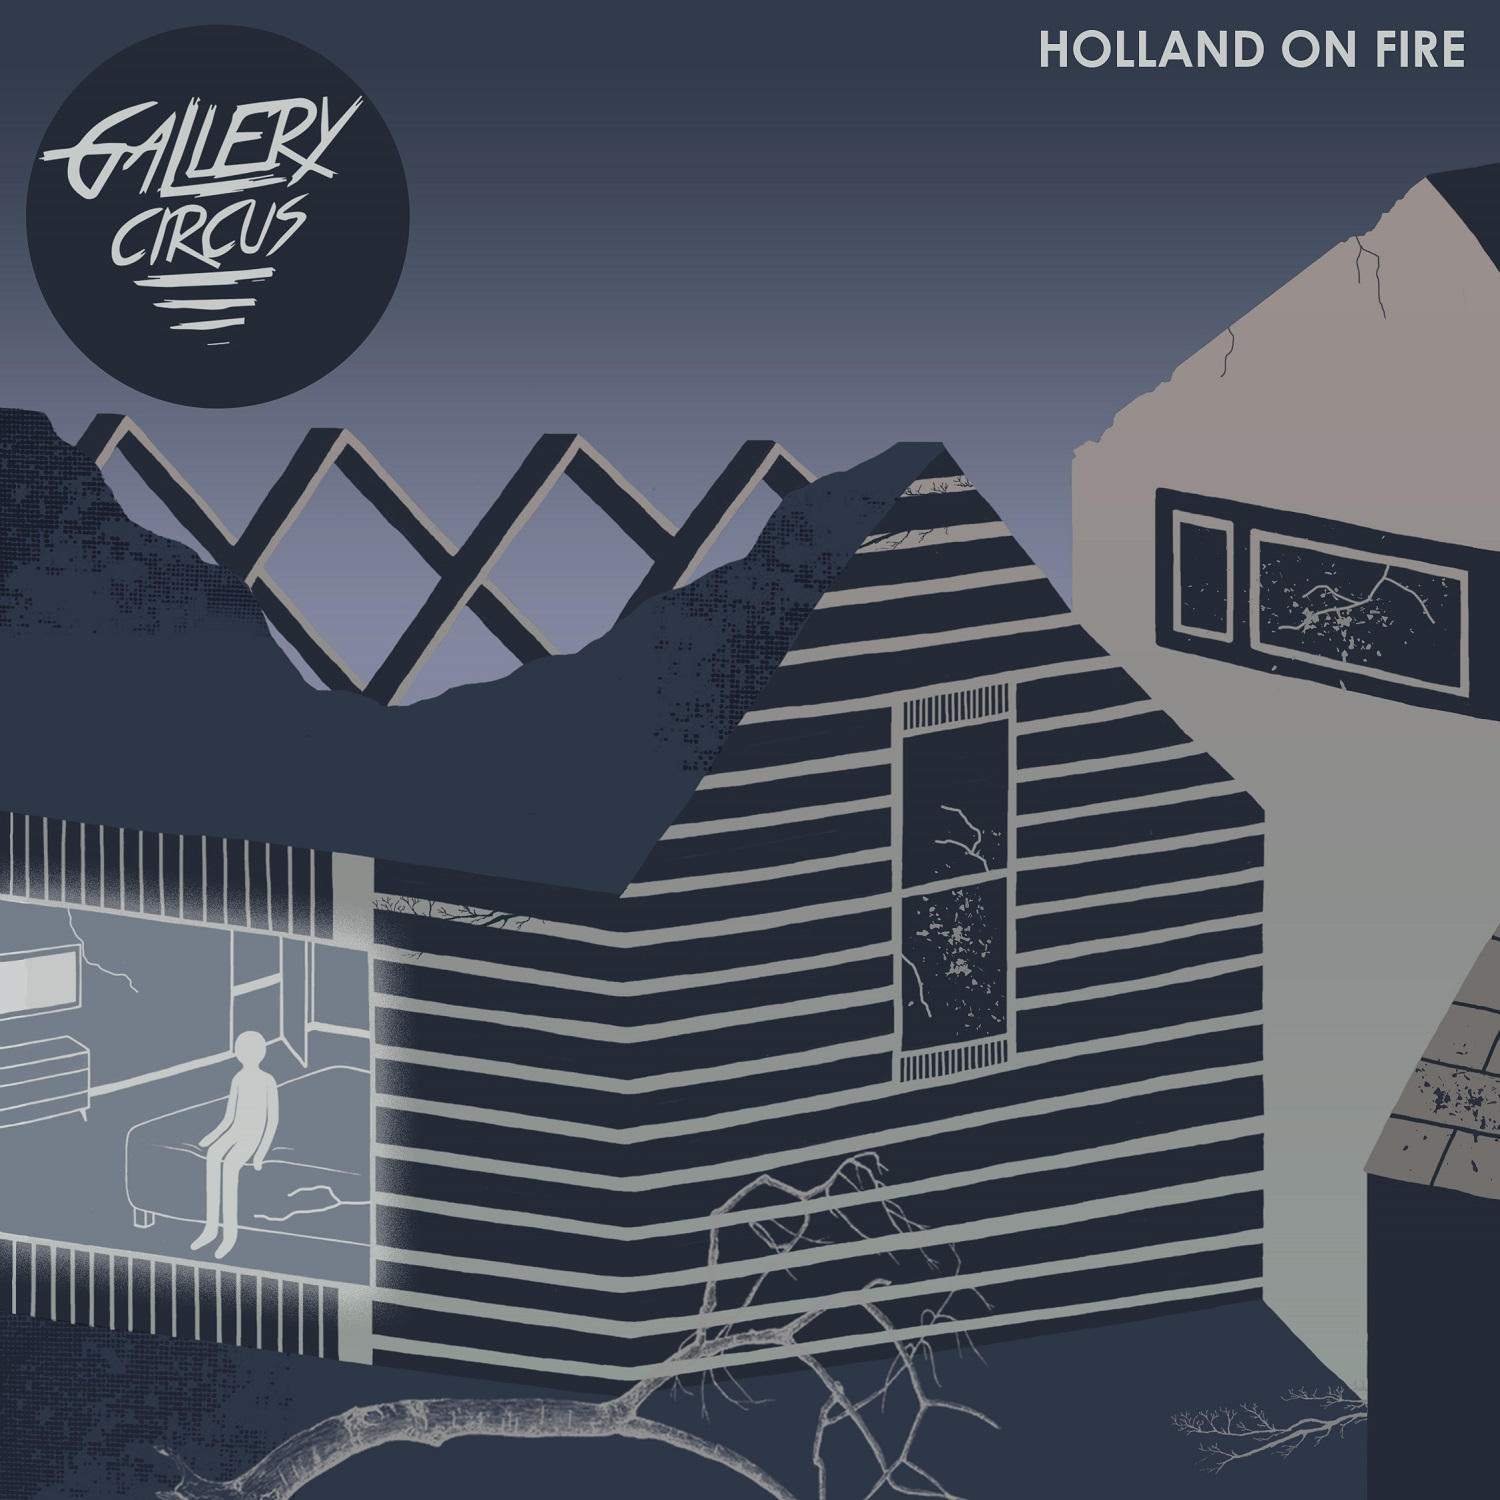 Gallery Circus – Holland On Fire